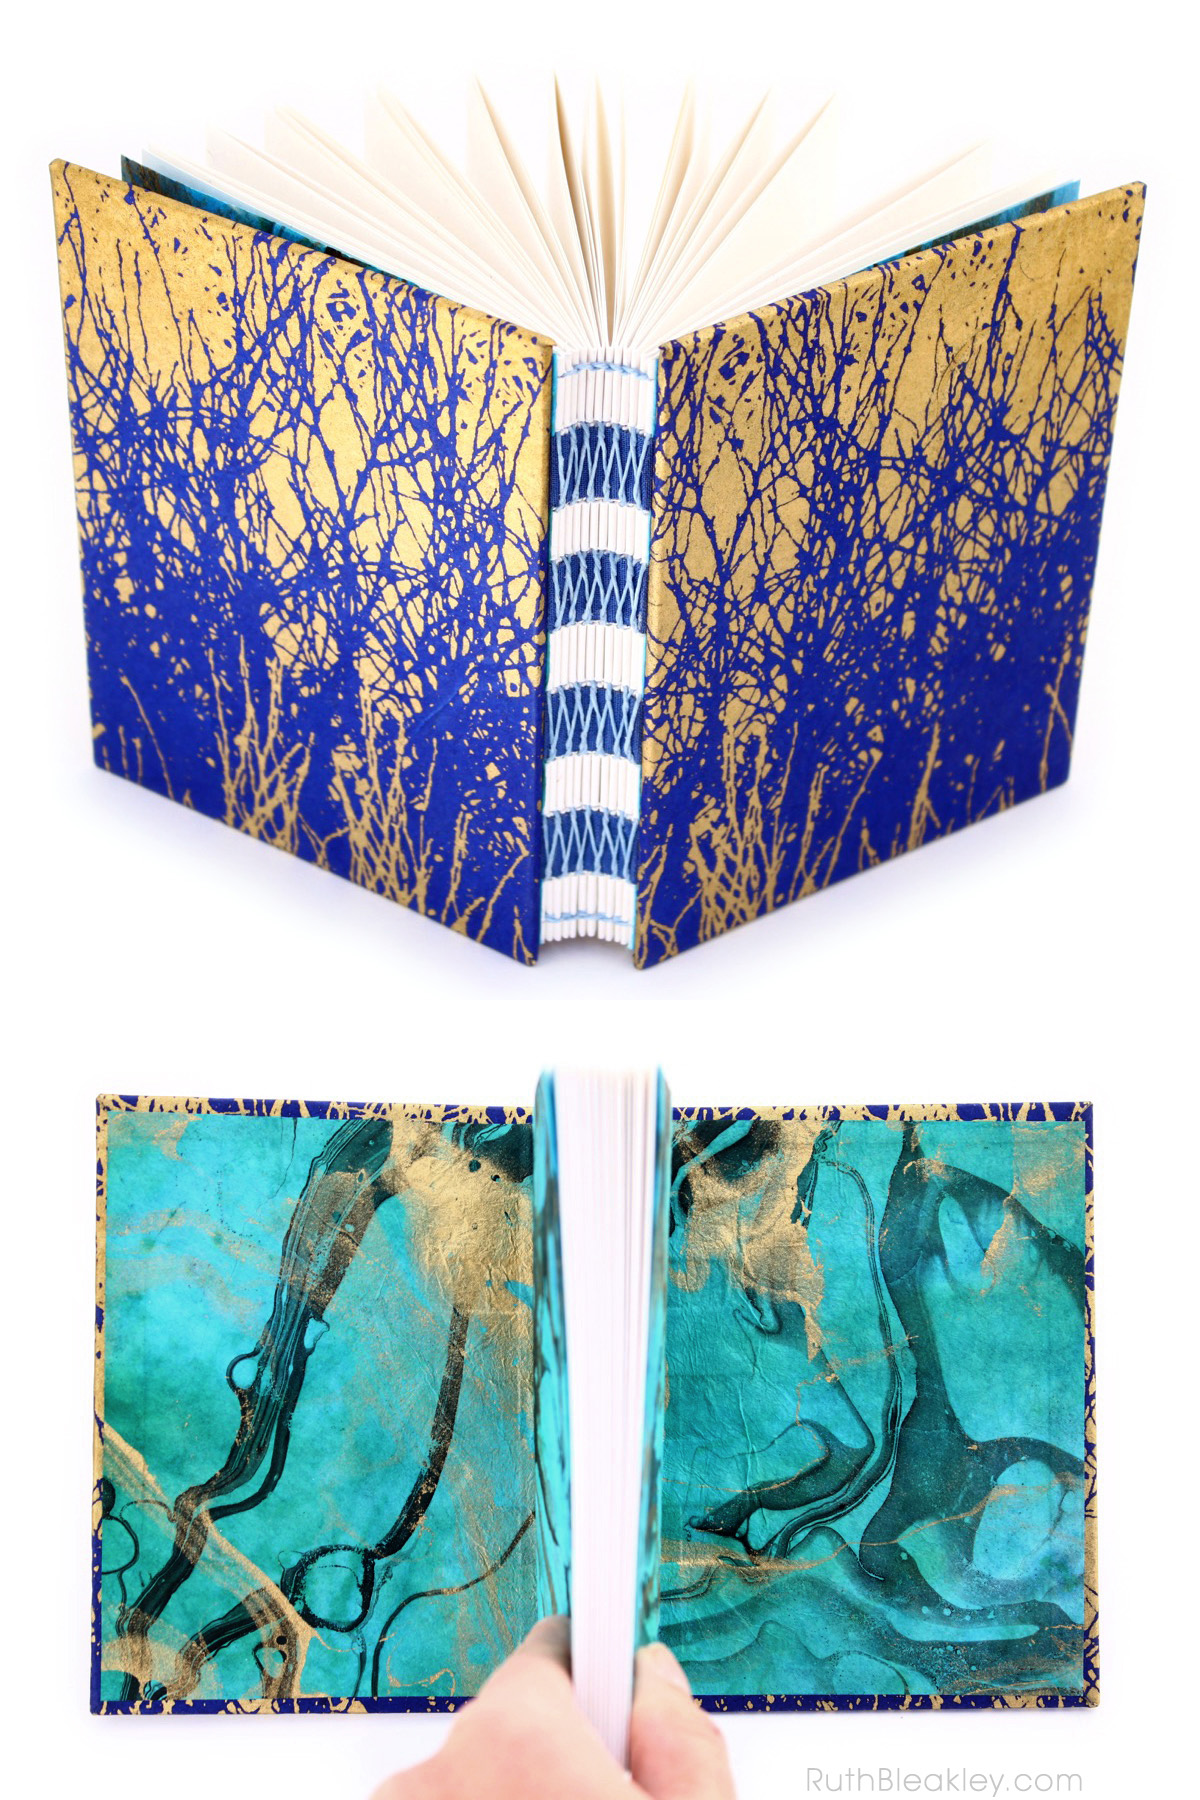 Handmade Journal with French Link Stitch and Indigo and Gold covers by Ruth Bleakley